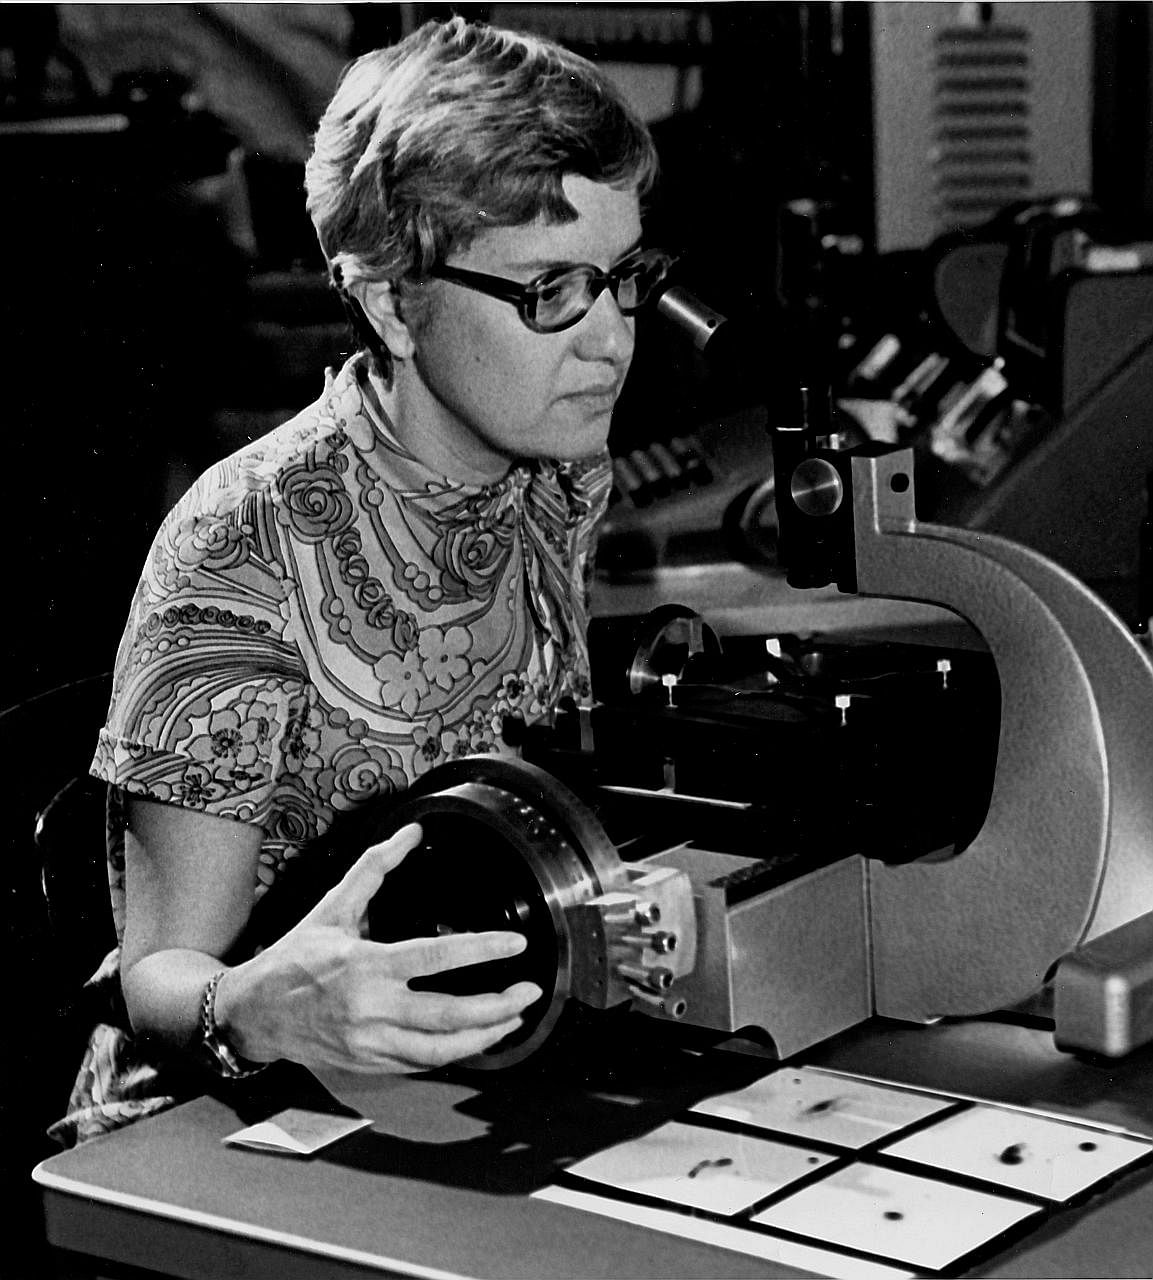 Dr Vera Rubin at work in the 1970s. The astrophysicist, who died on Christmas Day, was overlooked for a Nobel despite her groundbreaking work on dark matter. Had she won the prize, she would have been celebrated as an inspiration for aspiring scienti